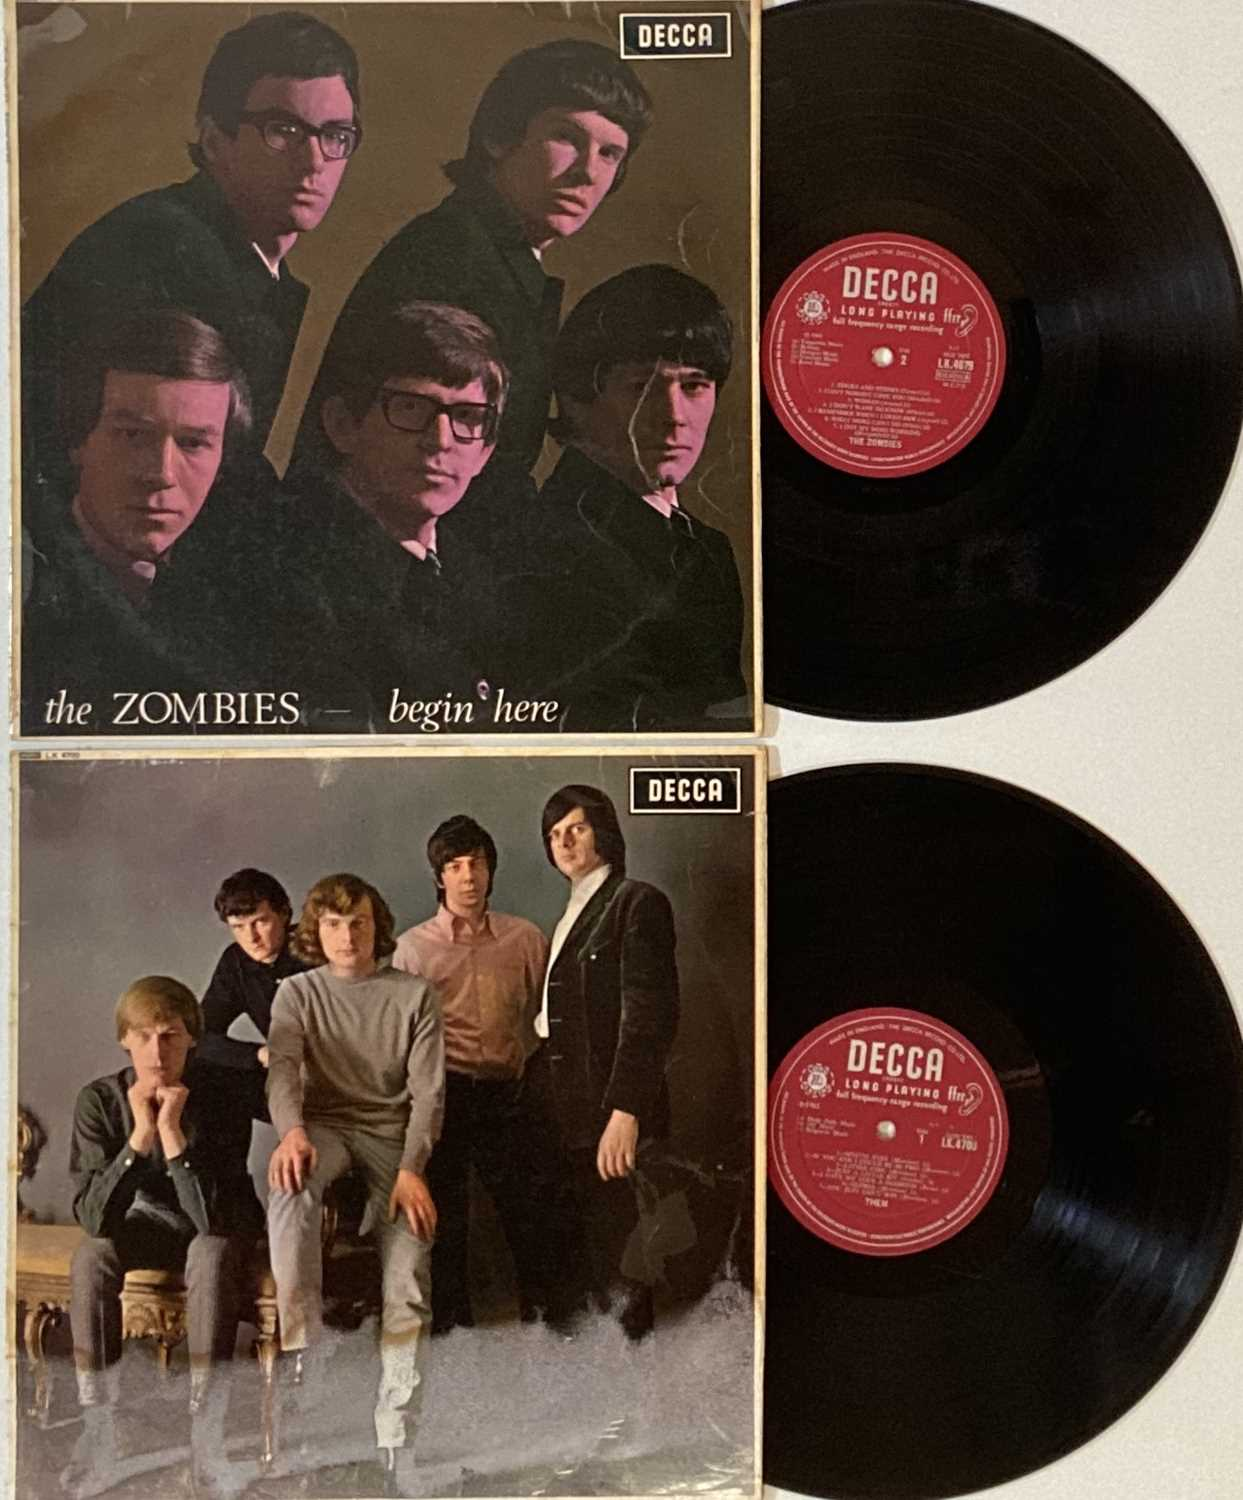 60s MOD/BEAT - LPs - Image 3 of 5